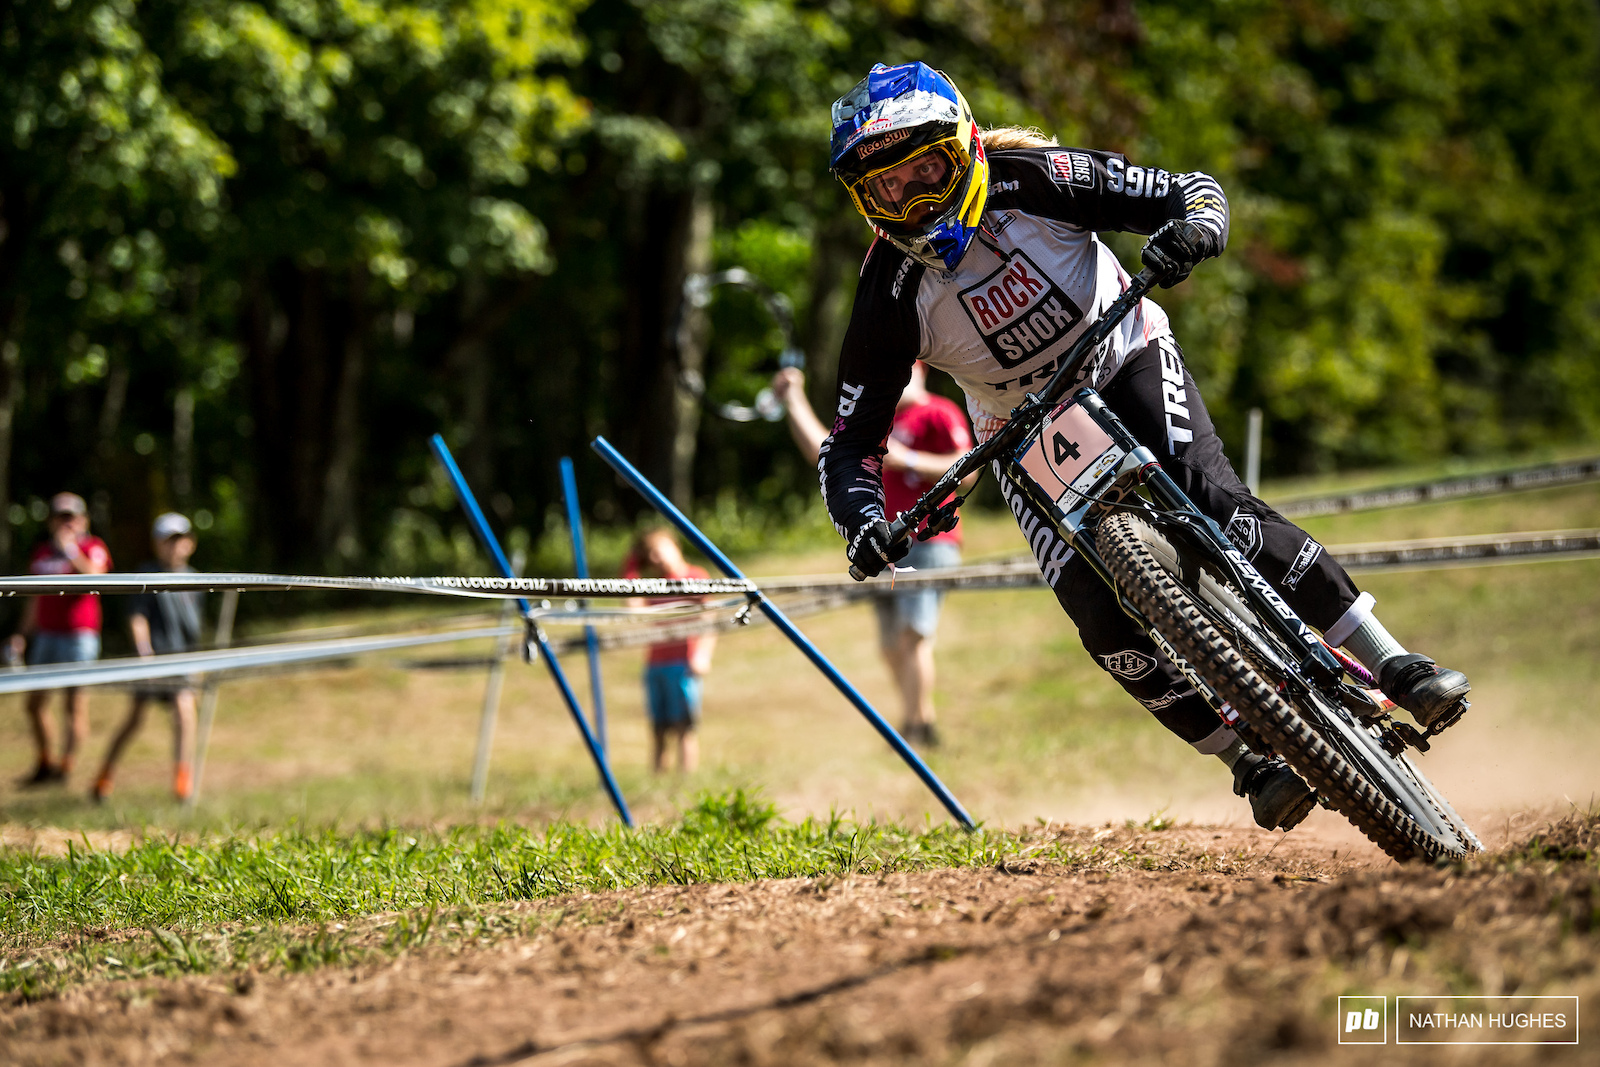 Vali Hoell gripping and ripping on the formerly dreaded final turn .